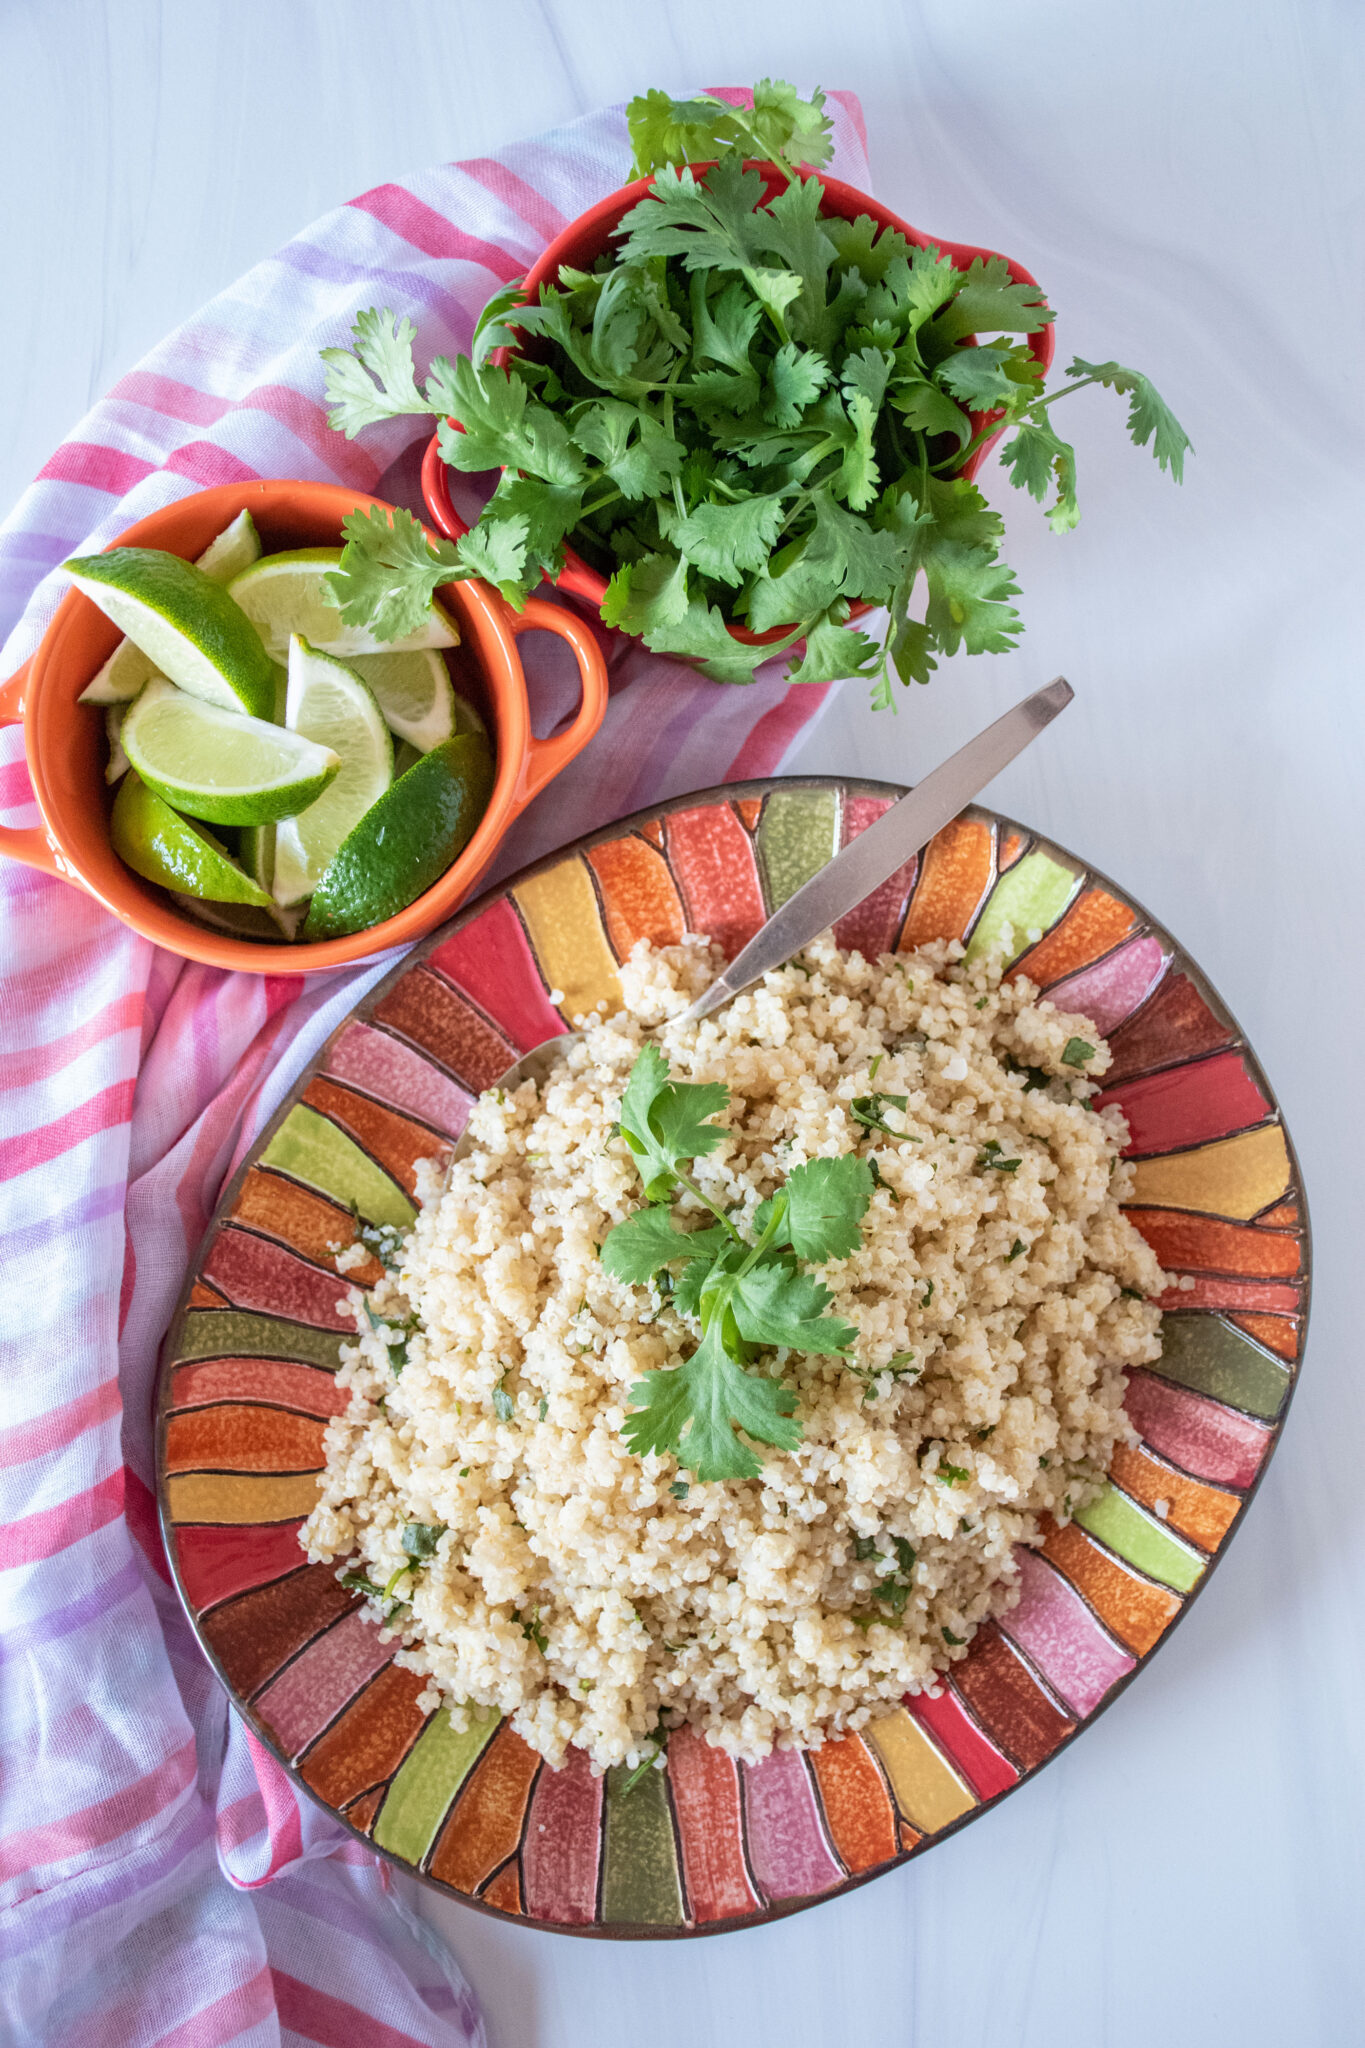 Overhead picture of quinoa on a plate, with small bowls of limes slices and fresh cilantro above.